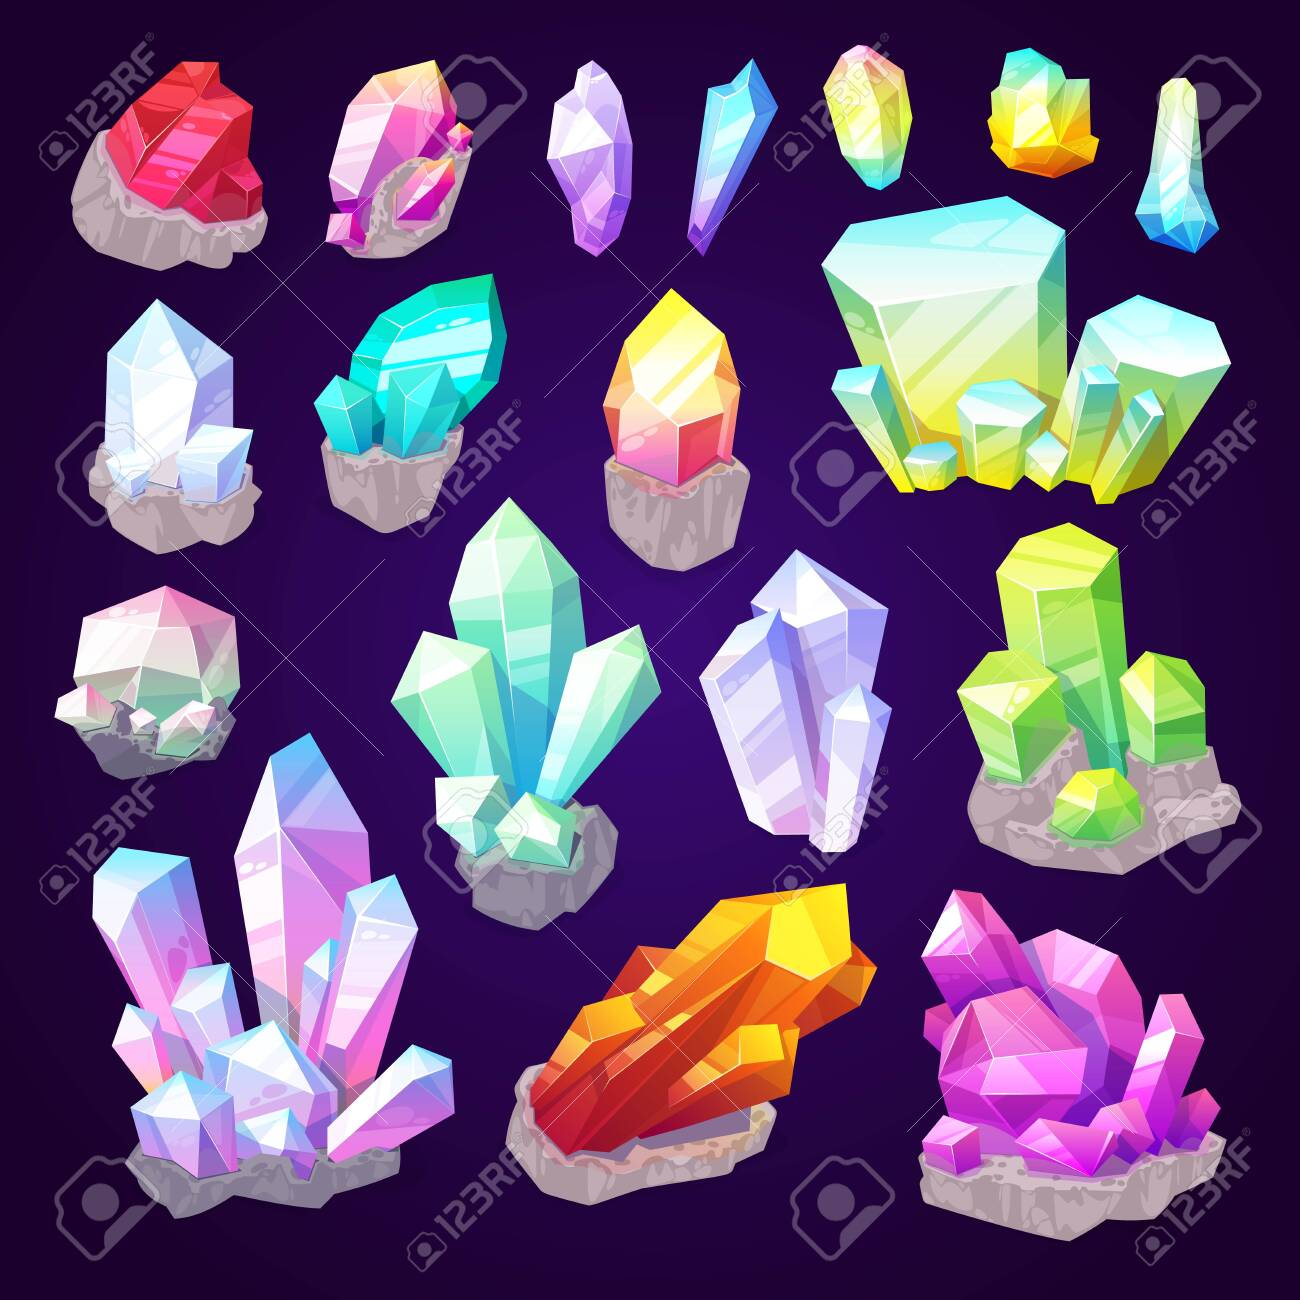 Gemstone crystals, gem stones and natural minerals. Vector sparkling brilliant diamond, emerald jewel or sapphire shine and amethyst with ruby in precious cutting jewelry - 116740488